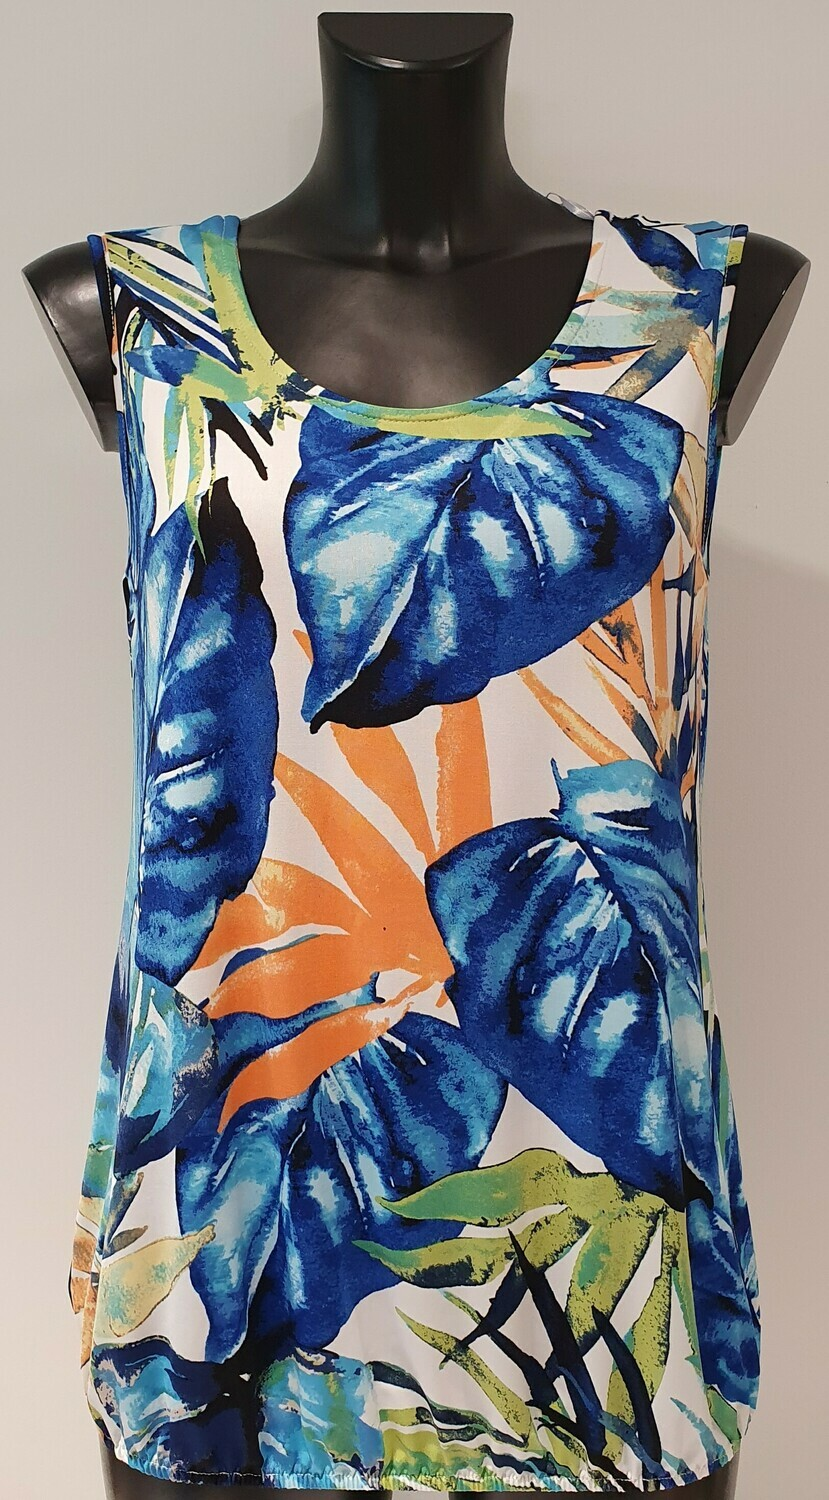 Batida 9019 Top Royal/leaves